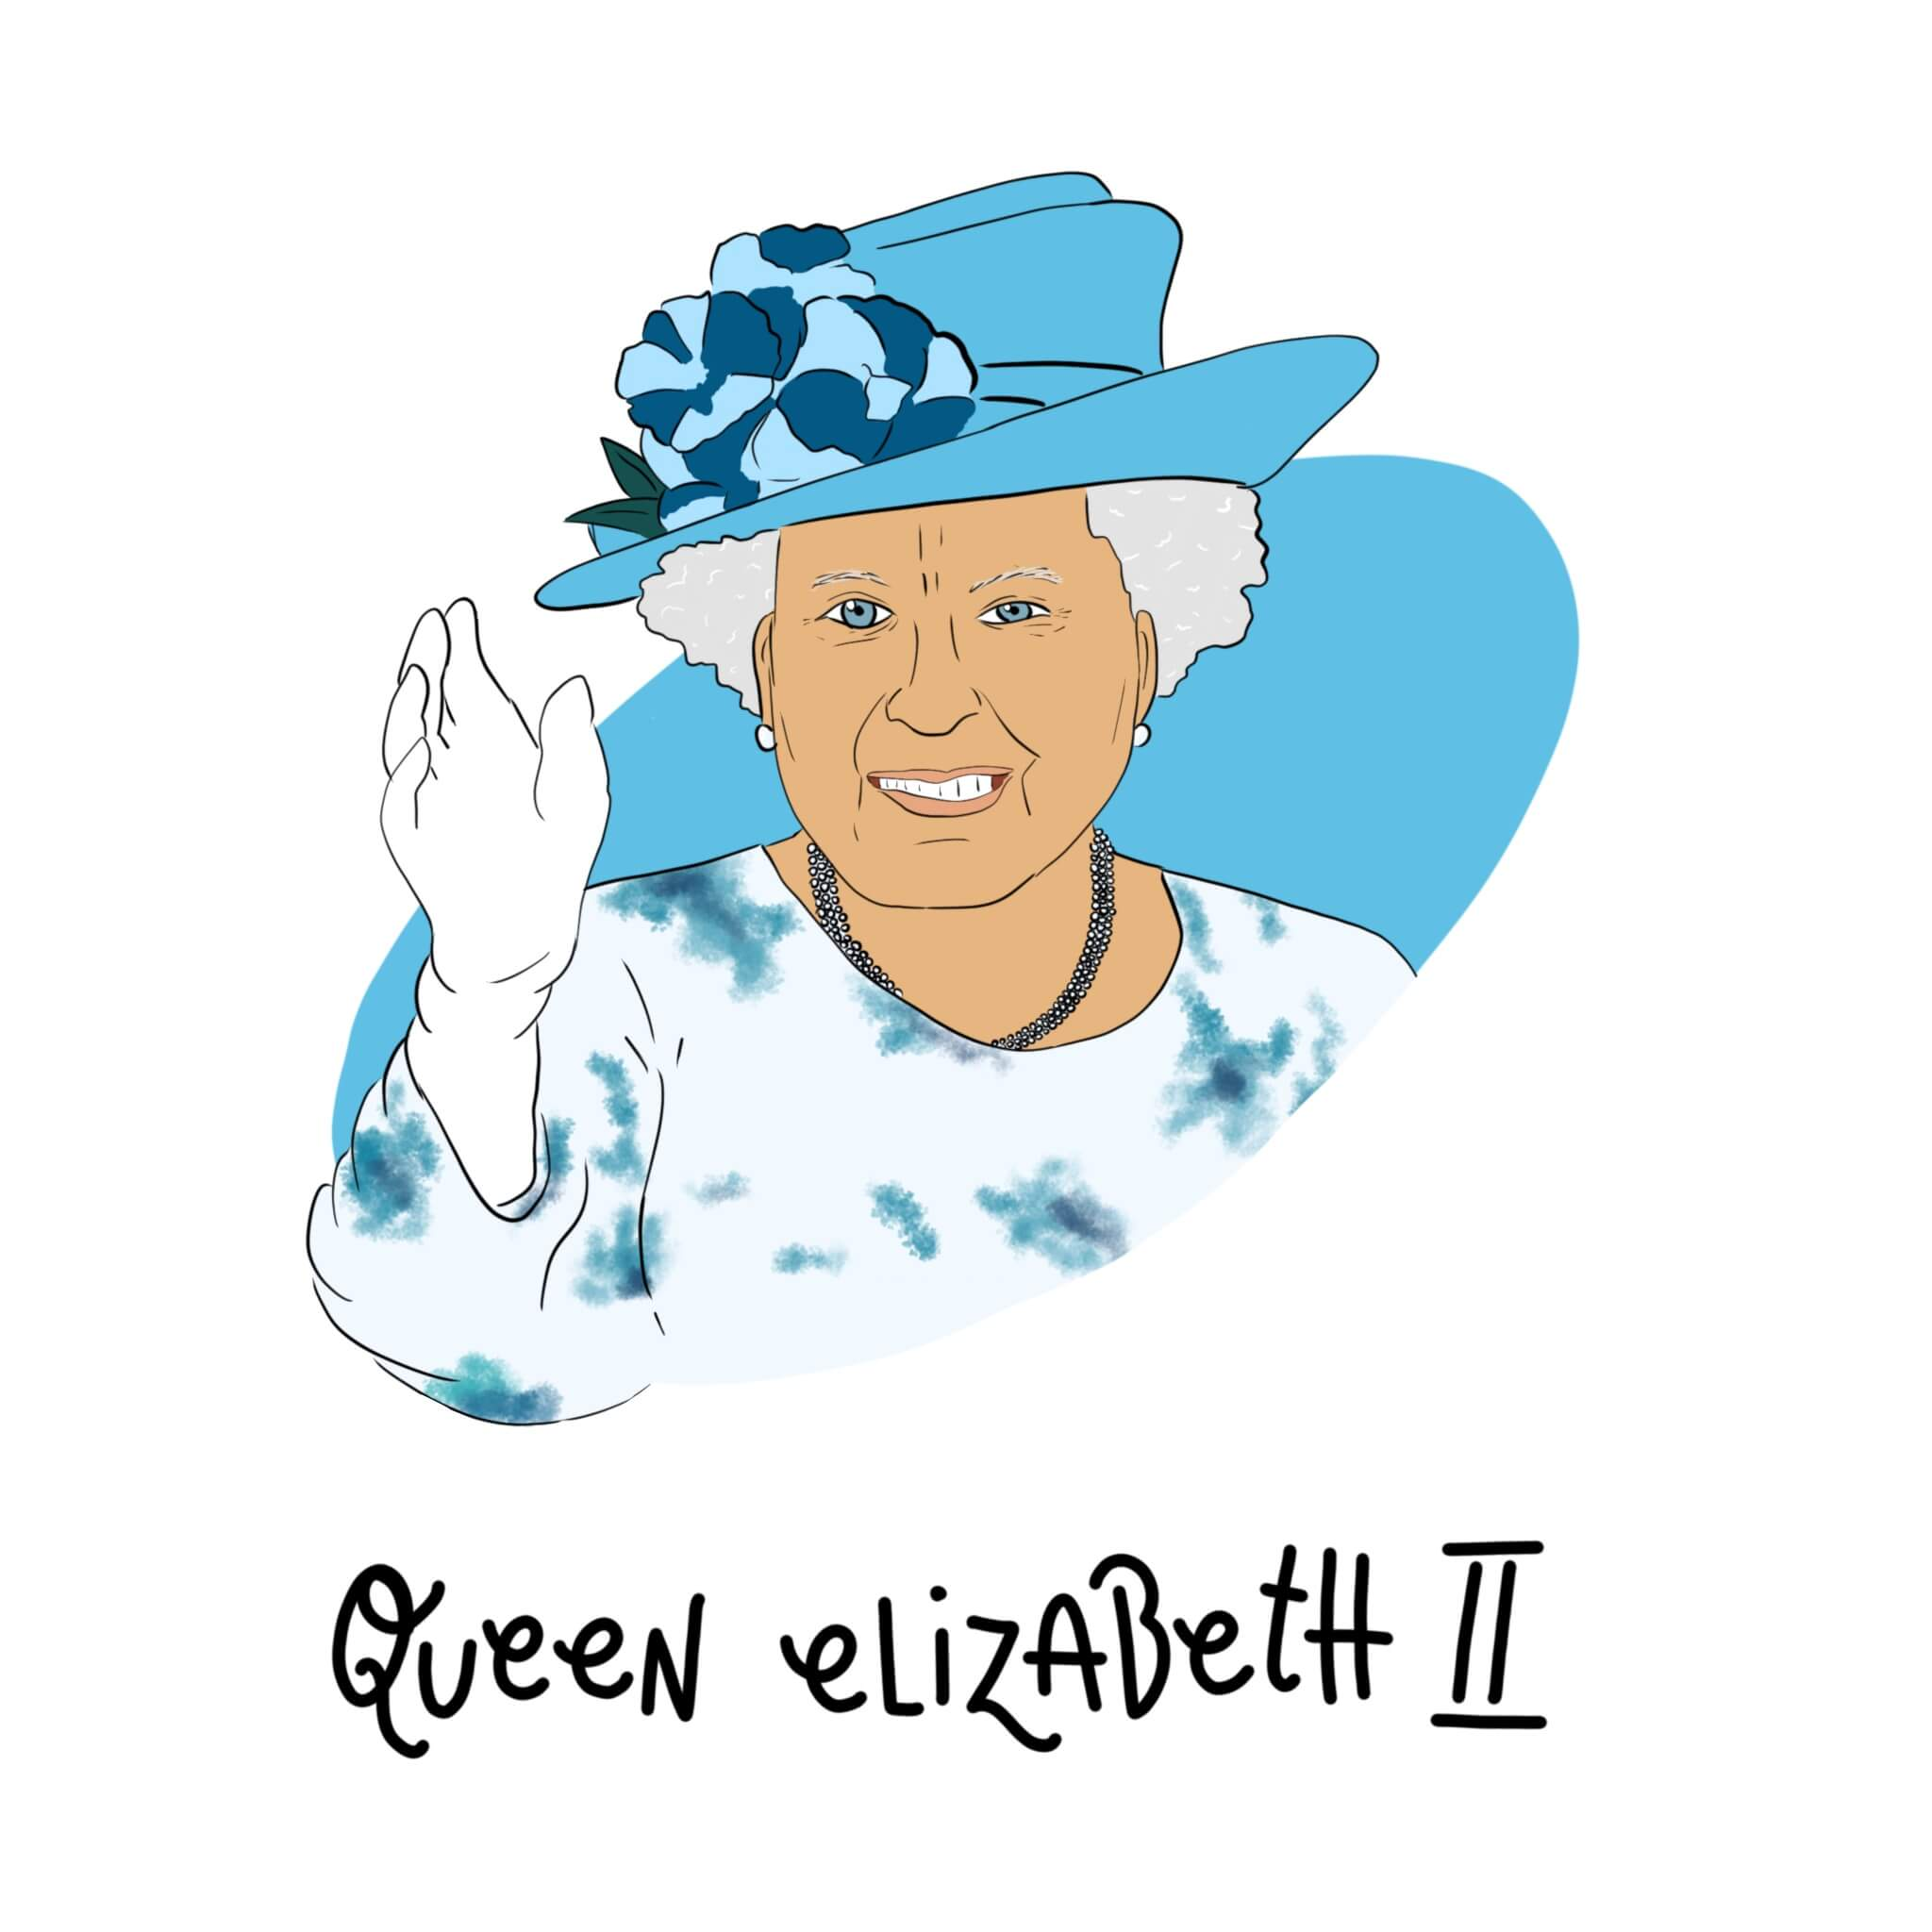 Queen Elizabeth II. Illustration by Jessica Ringelstein